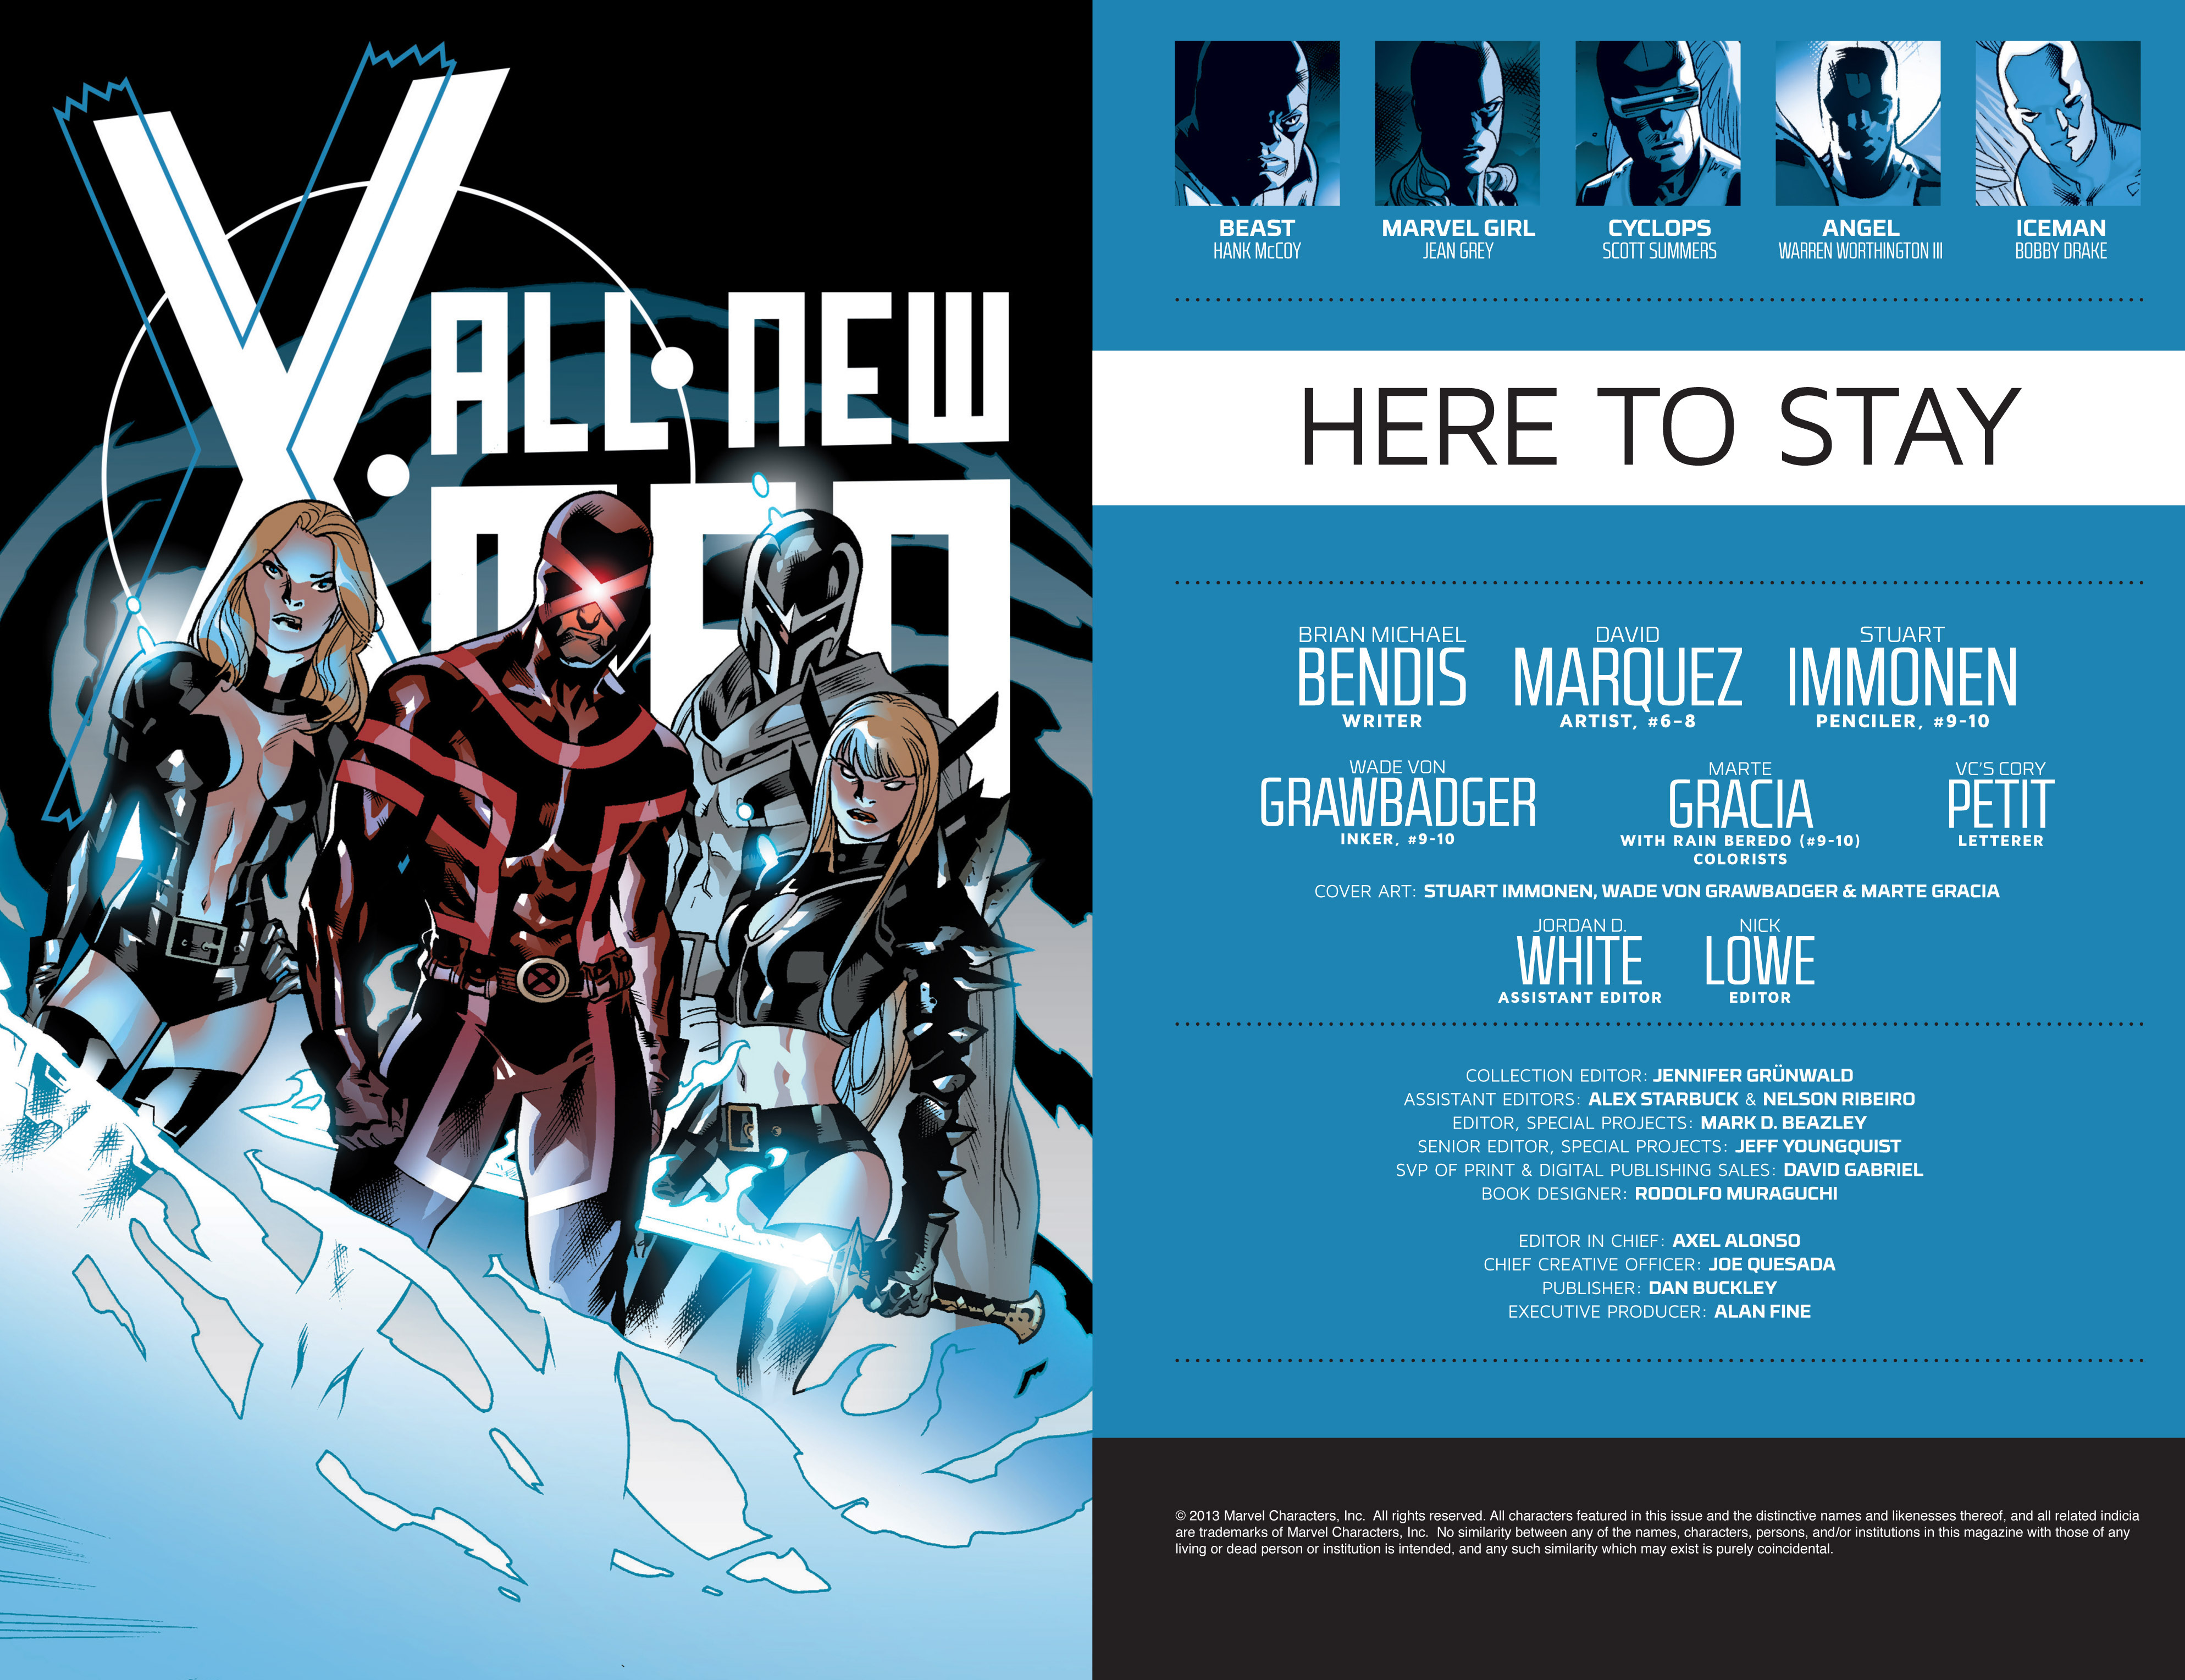 Read online All-New X-Men (2013) comic -  Issue # _Special - Here To Stay - 110